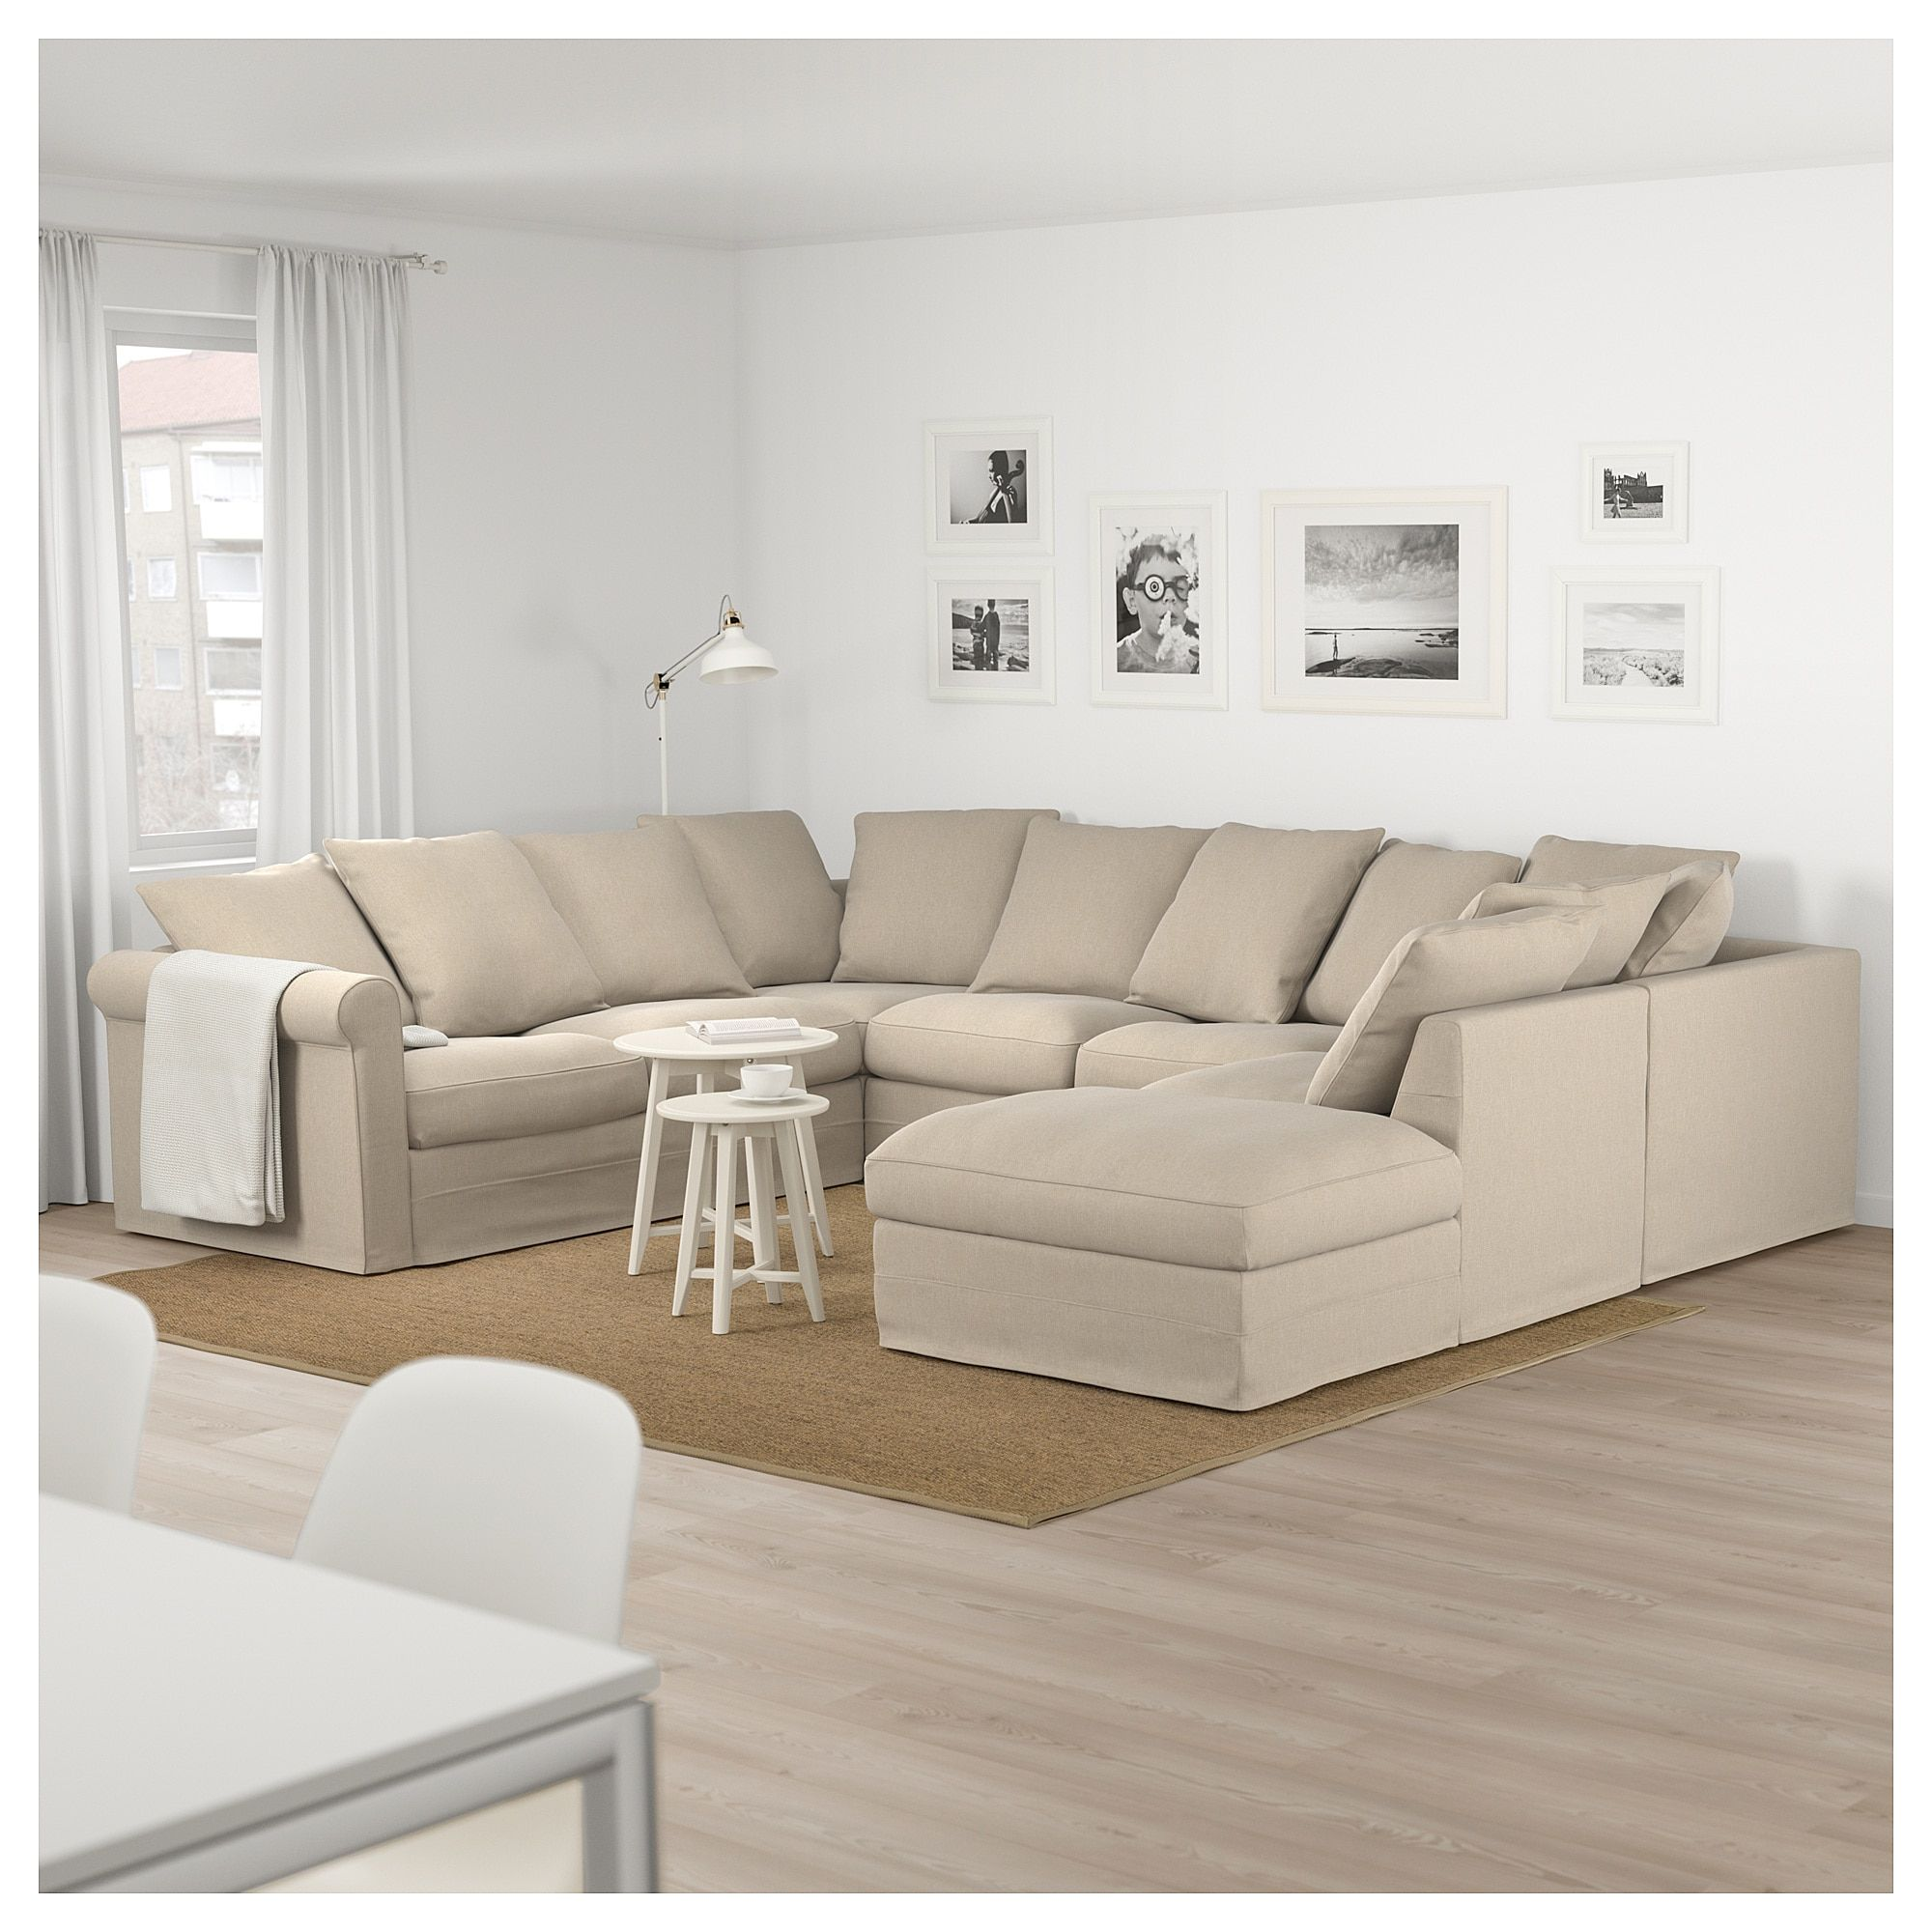 Furniture Home Furnishings Find Your Inspiration Sectional Sofa Ikea Sectional Sofa Deep Seated Sofa